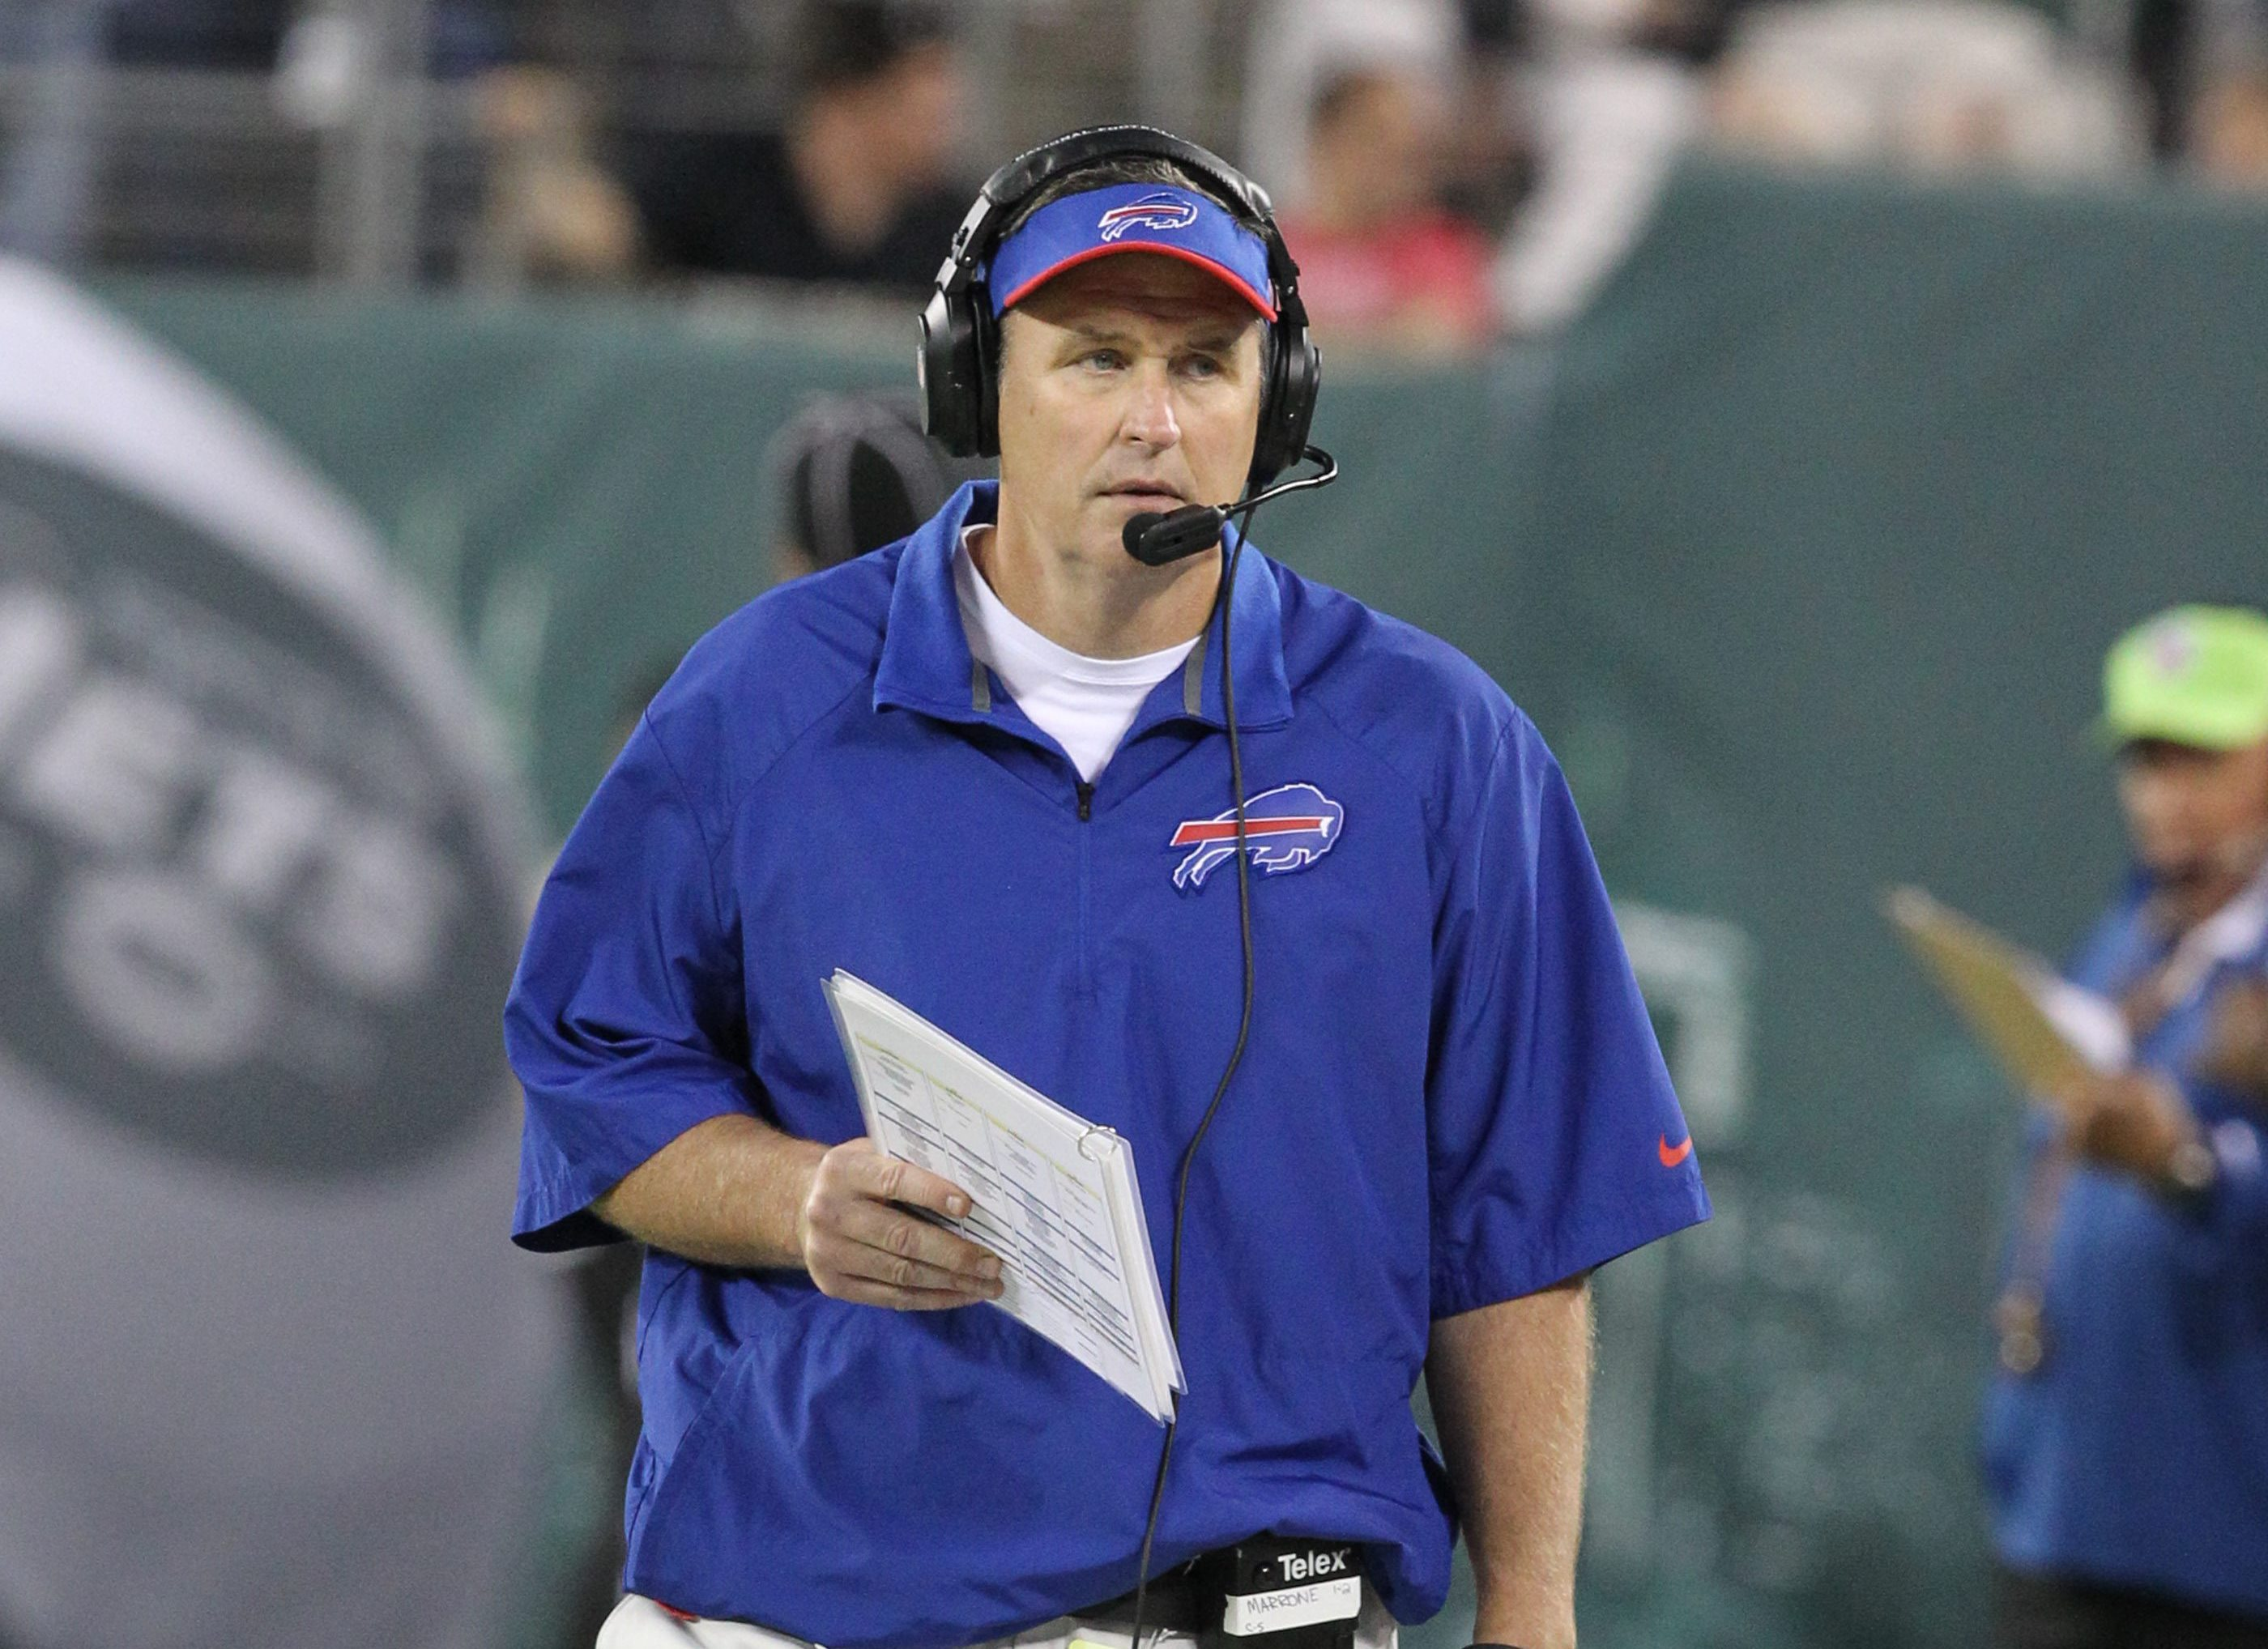 Buffalo Bills head coach Doug Marrone is seen on the sidelines at a game in East Rutherford, N.J., on Sept. 22, 2013.  (James P. McCoy/News file photo)